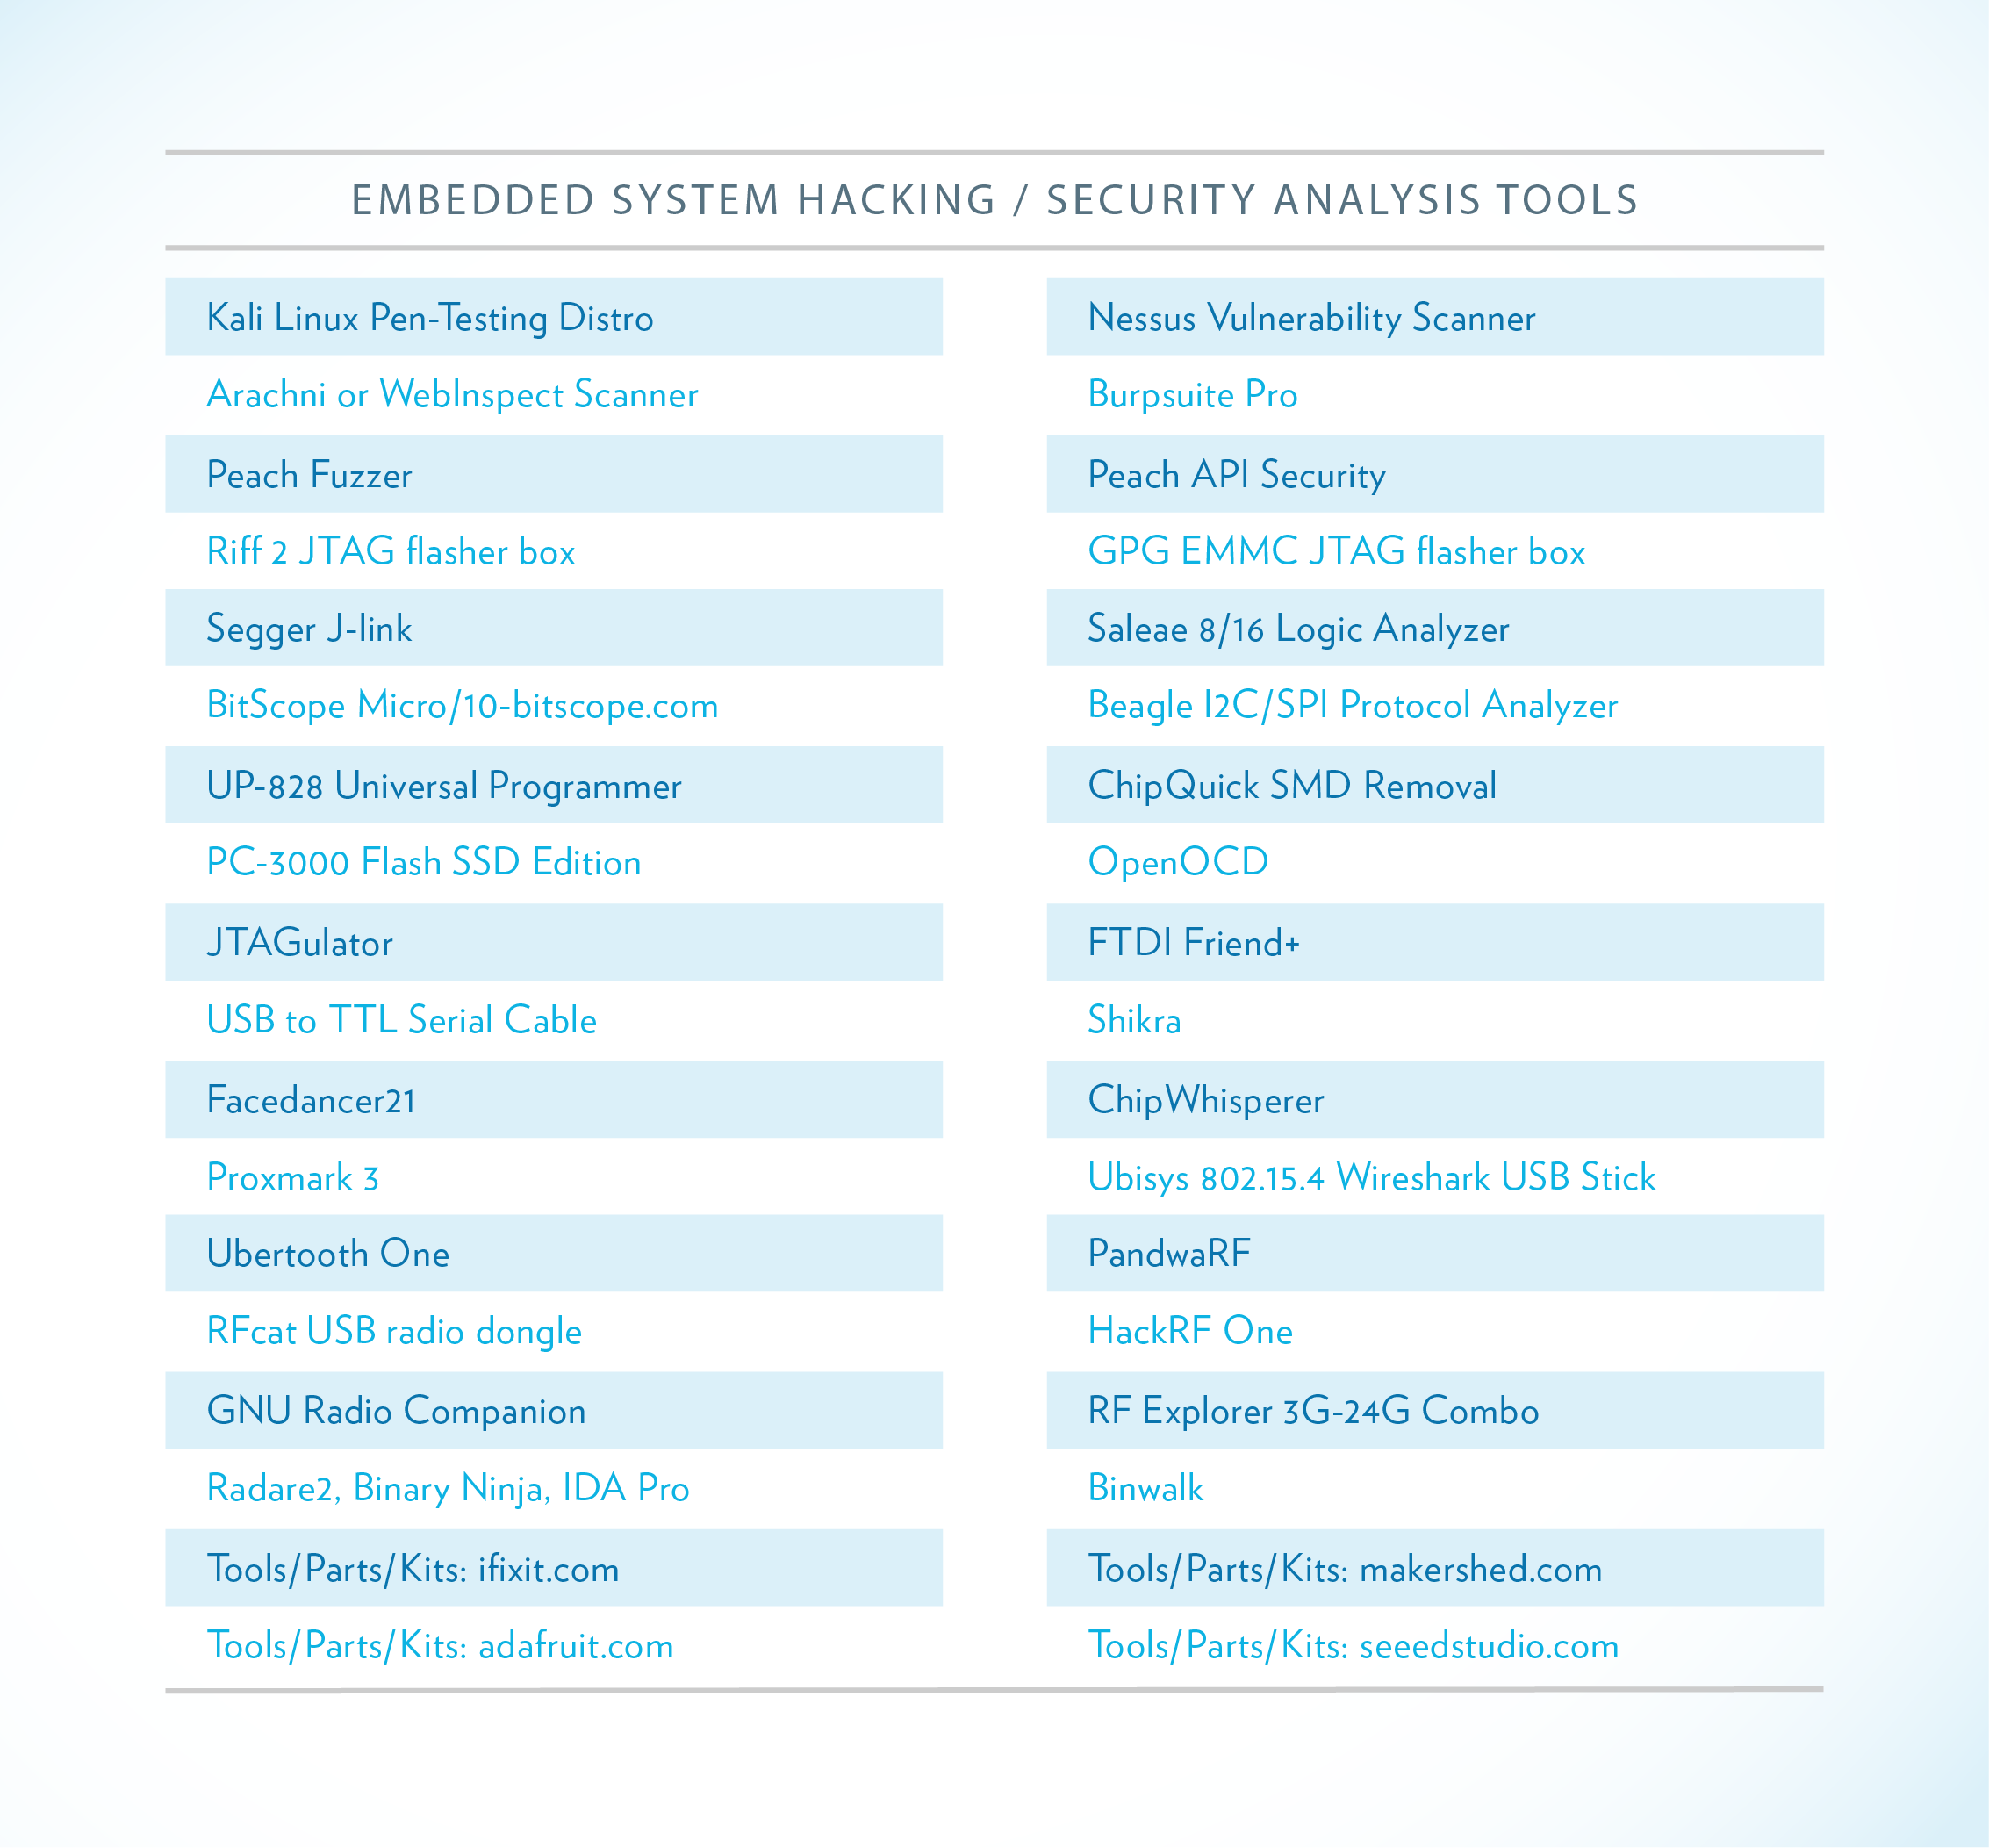 Embedded Systems Security Analysis Tools v1